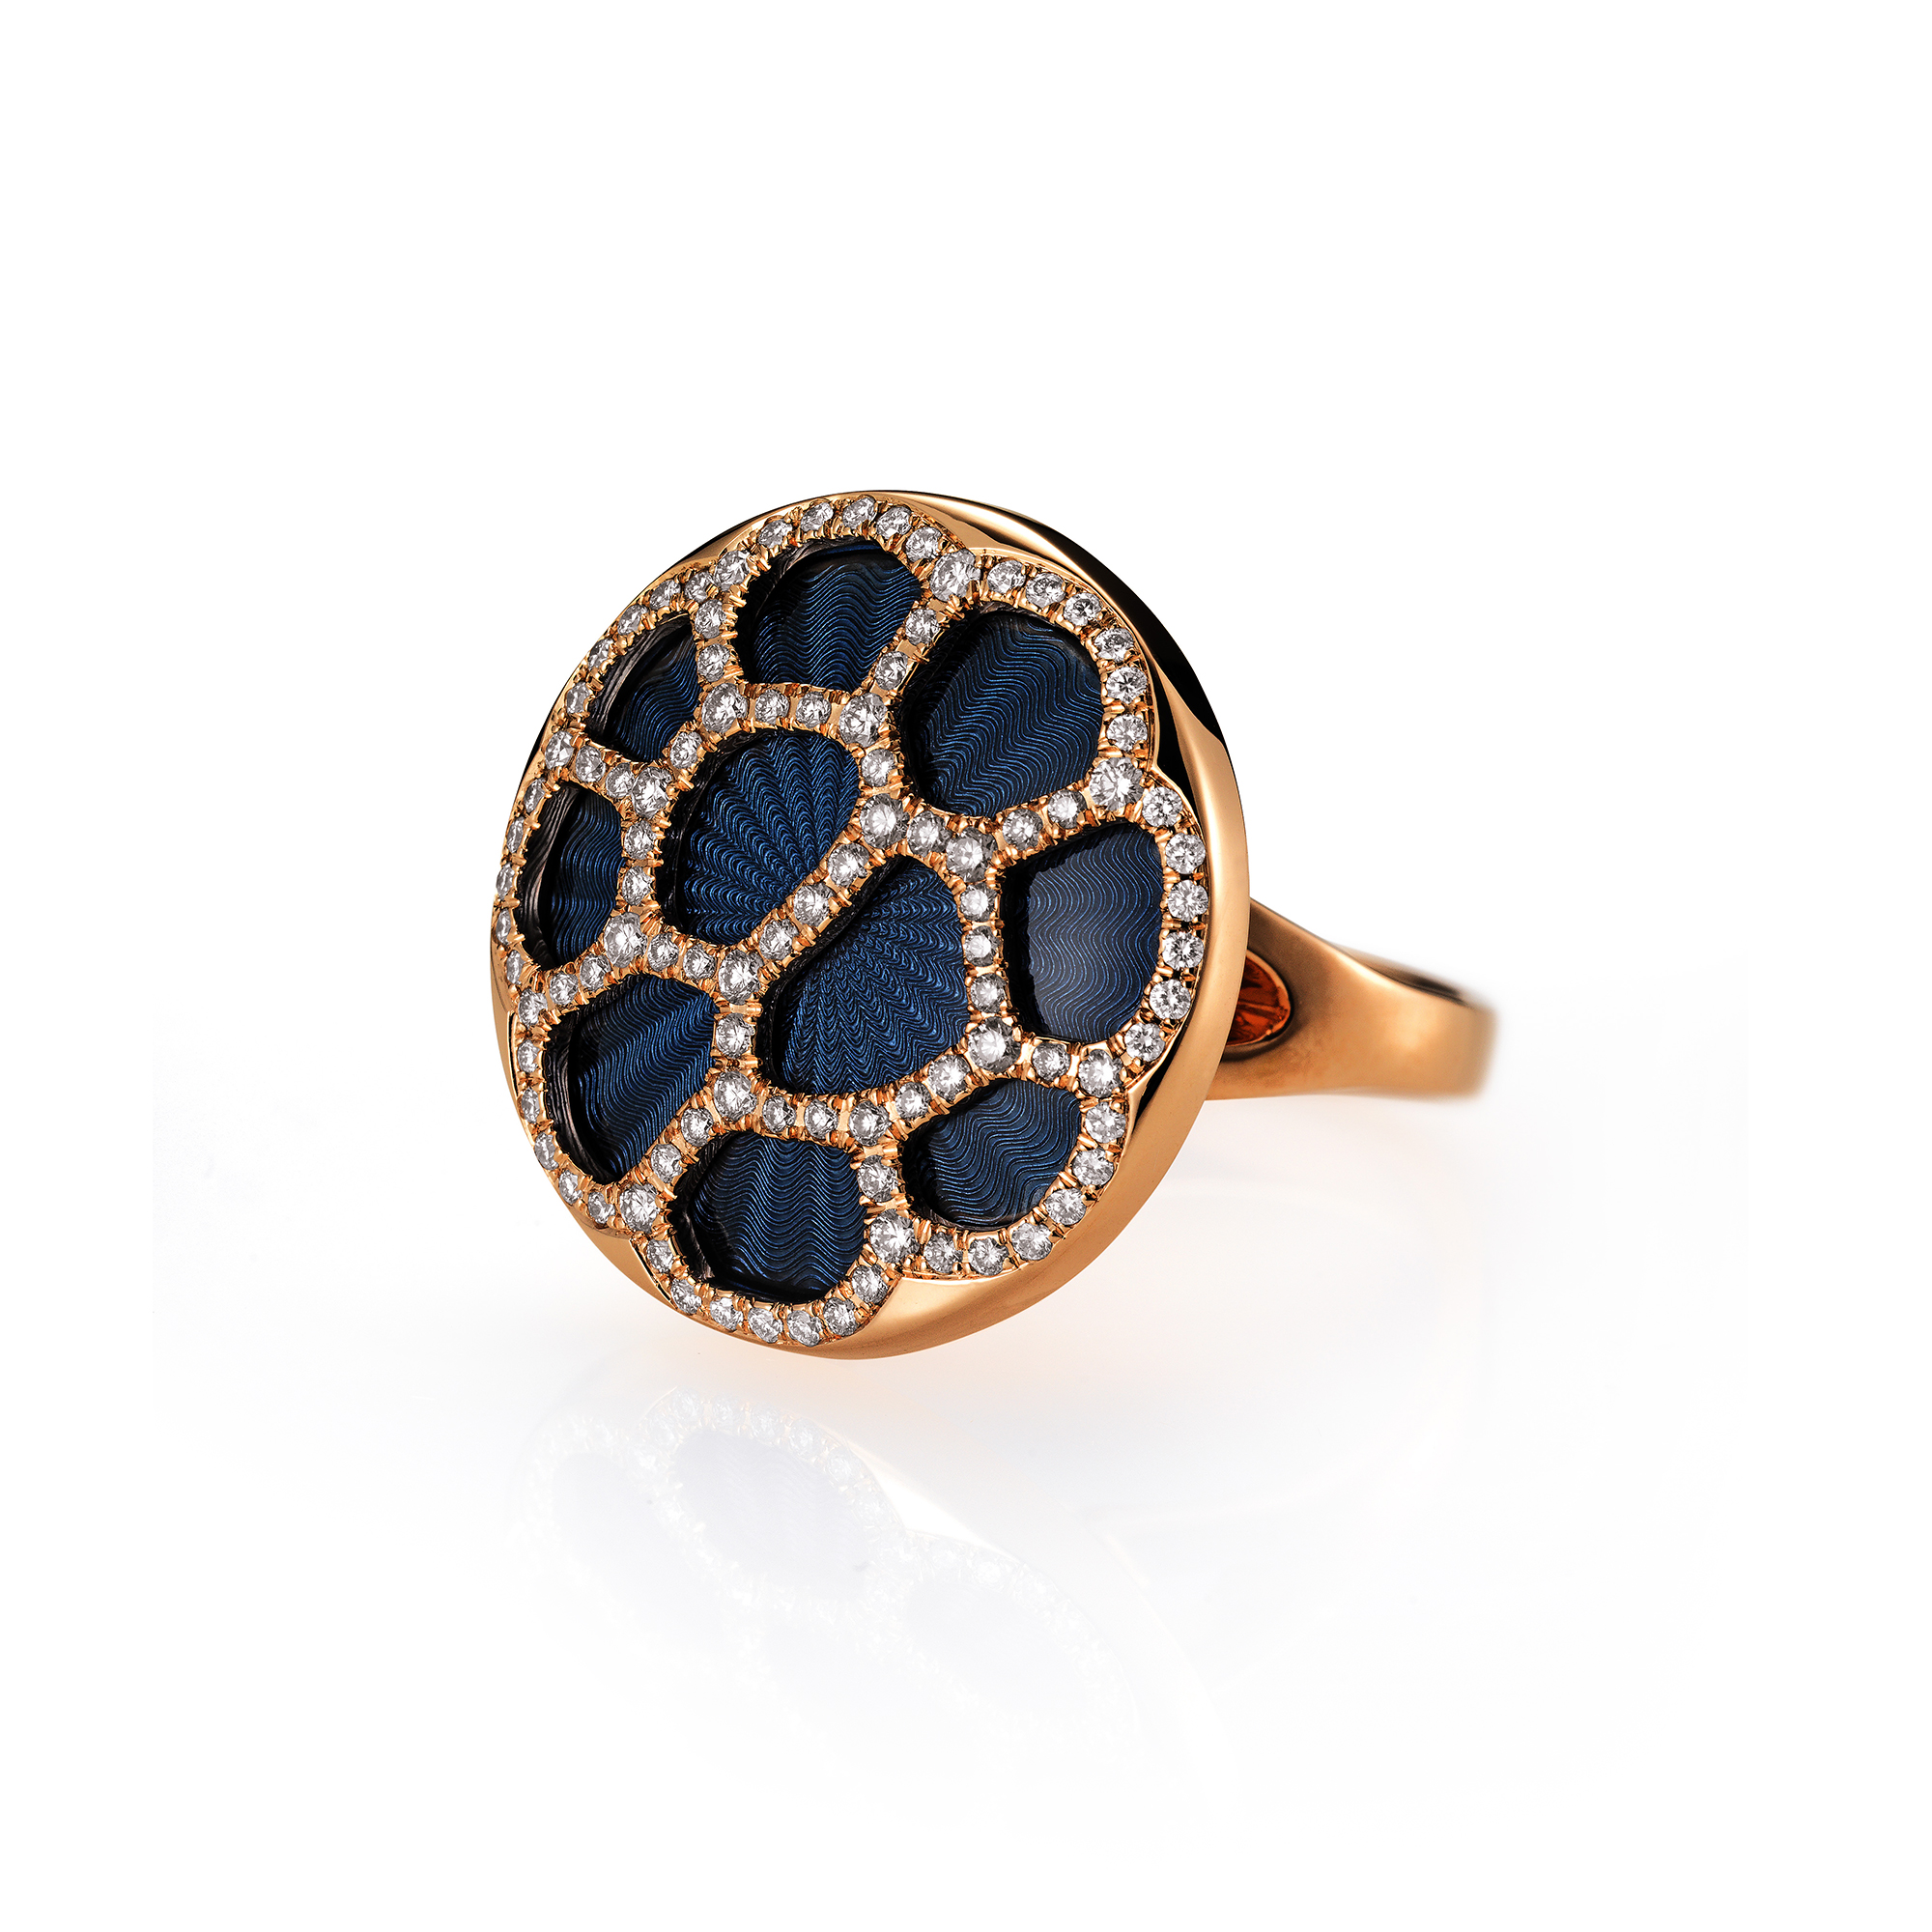 Victor Mayer Constance Ring